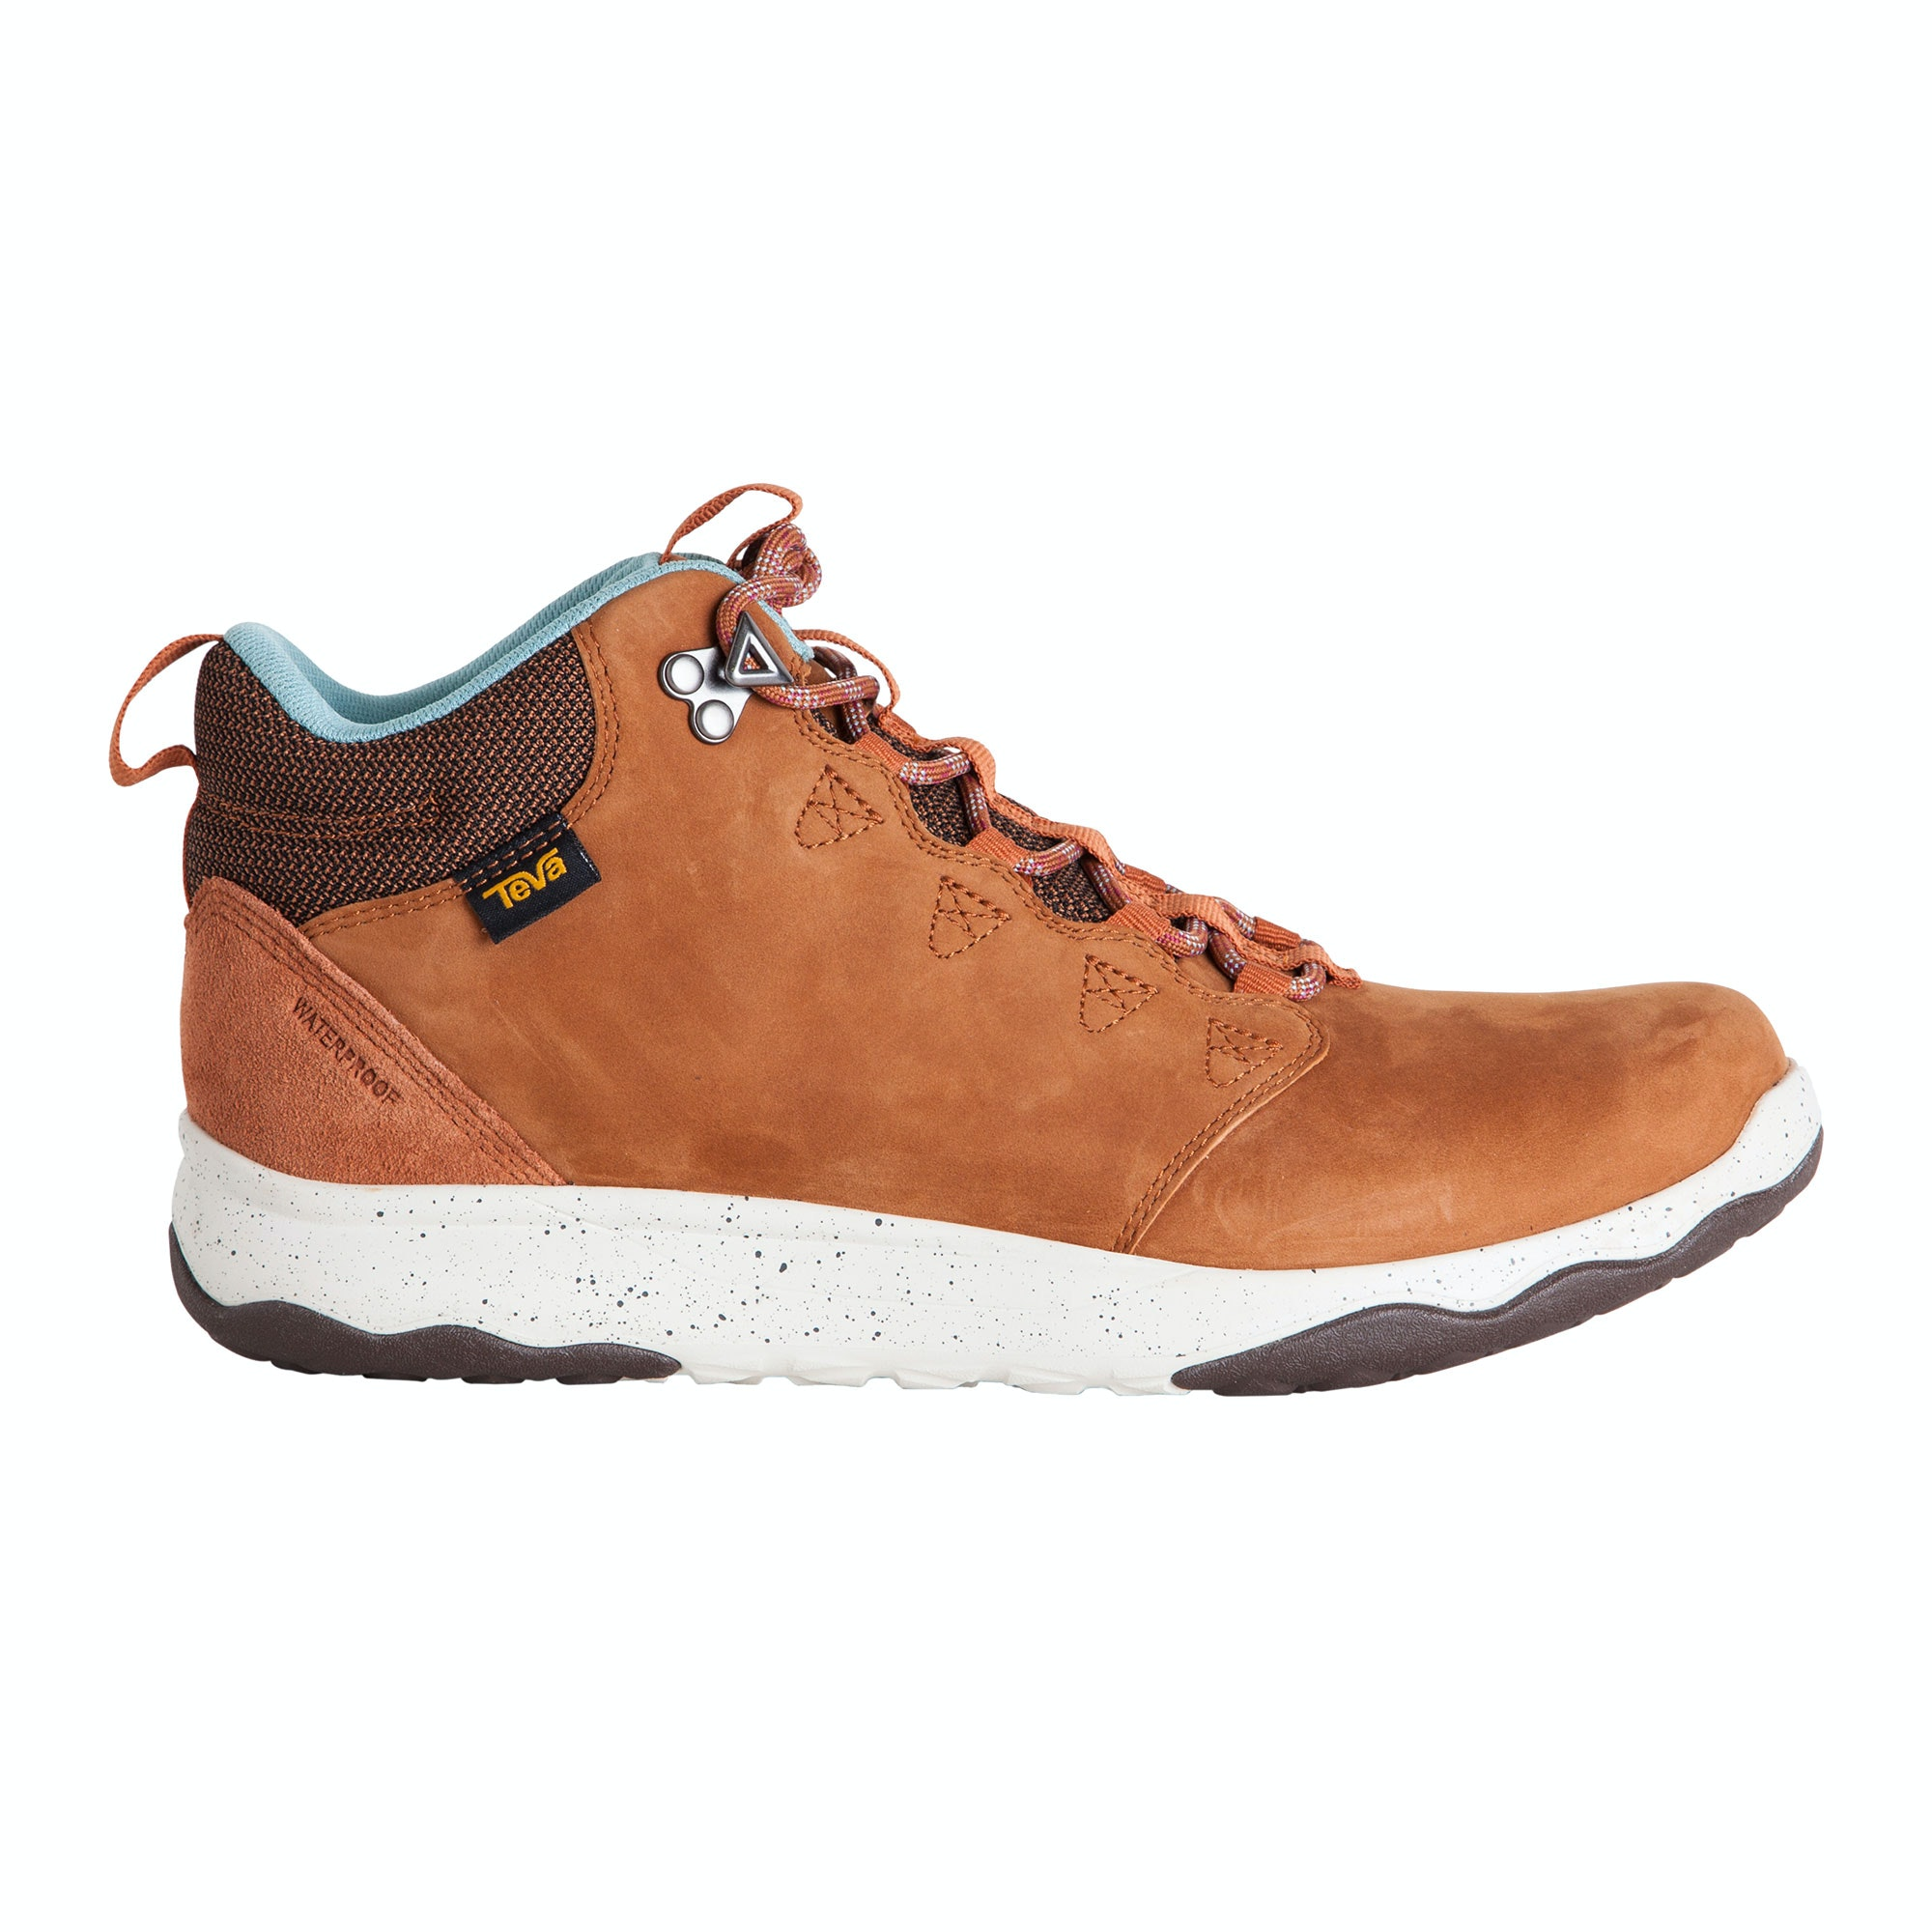 Teva Arrowood Lux Women's Mid Waterproof Boots